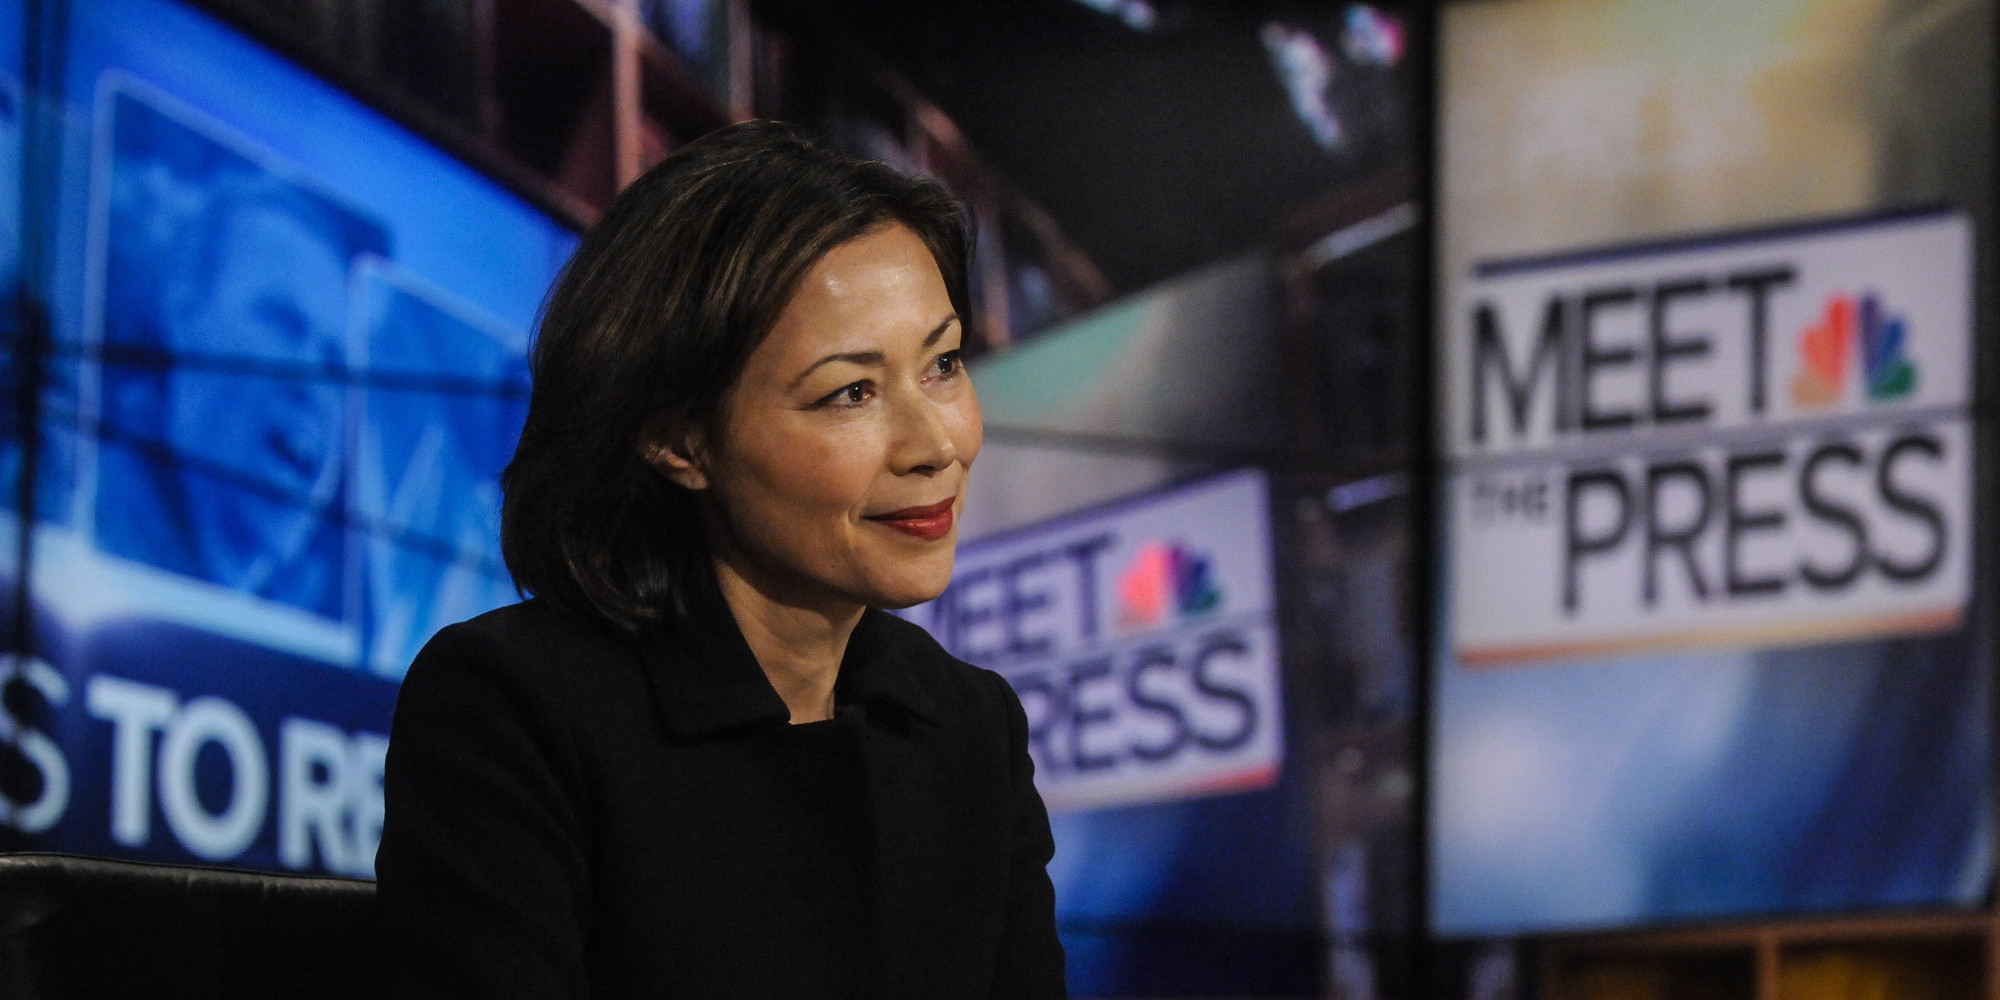 Image result for Ann Curry TV